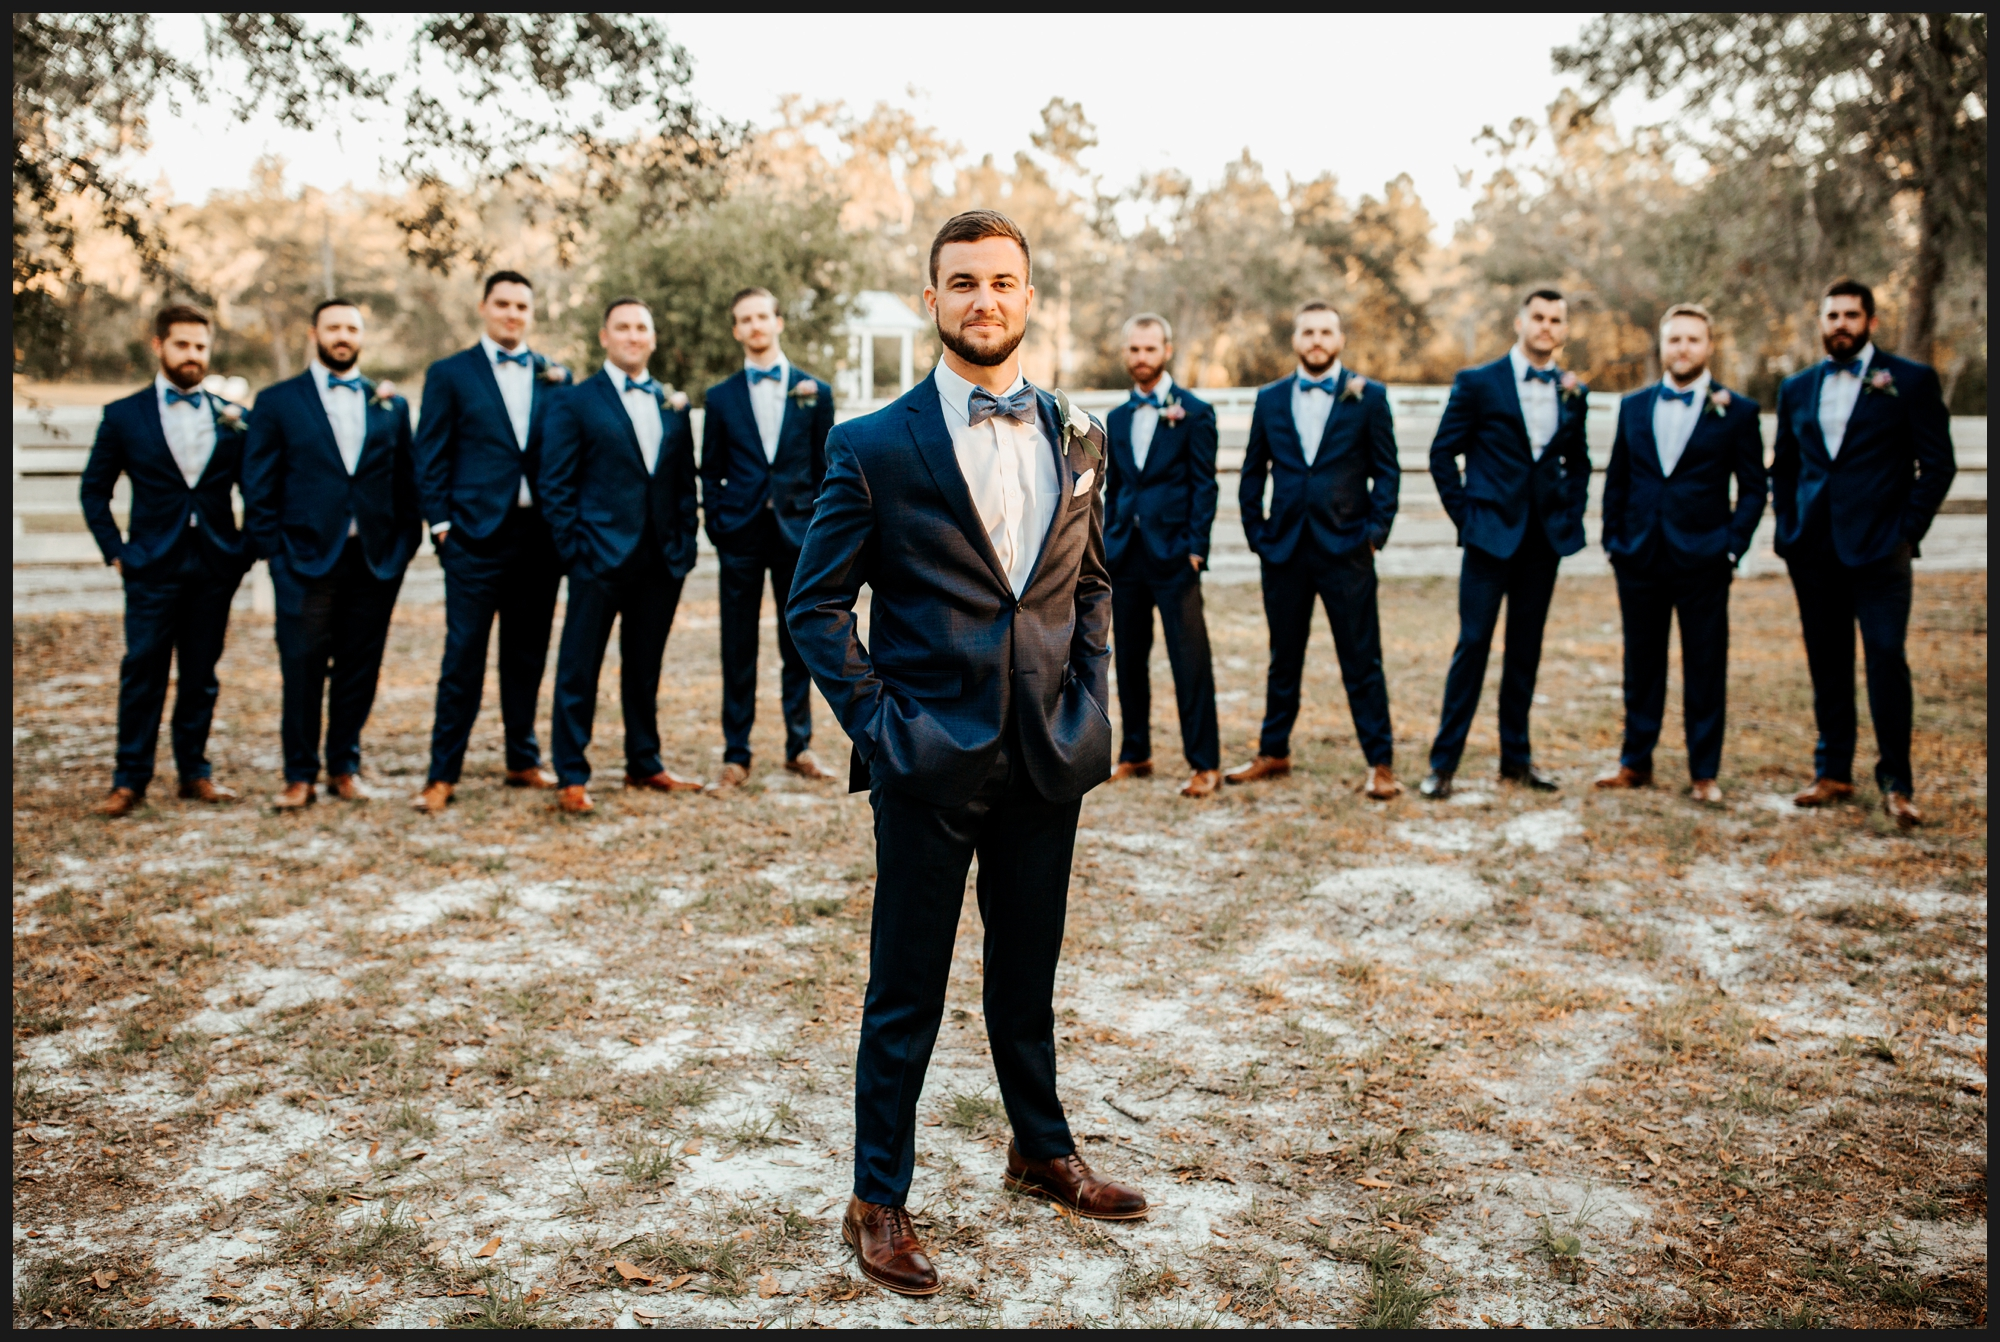 Orlando-Wedding-Photographer-destination-wedding-photographer-florida-wedding-photographer-bohemian-wedding-photographer_1101.jpg